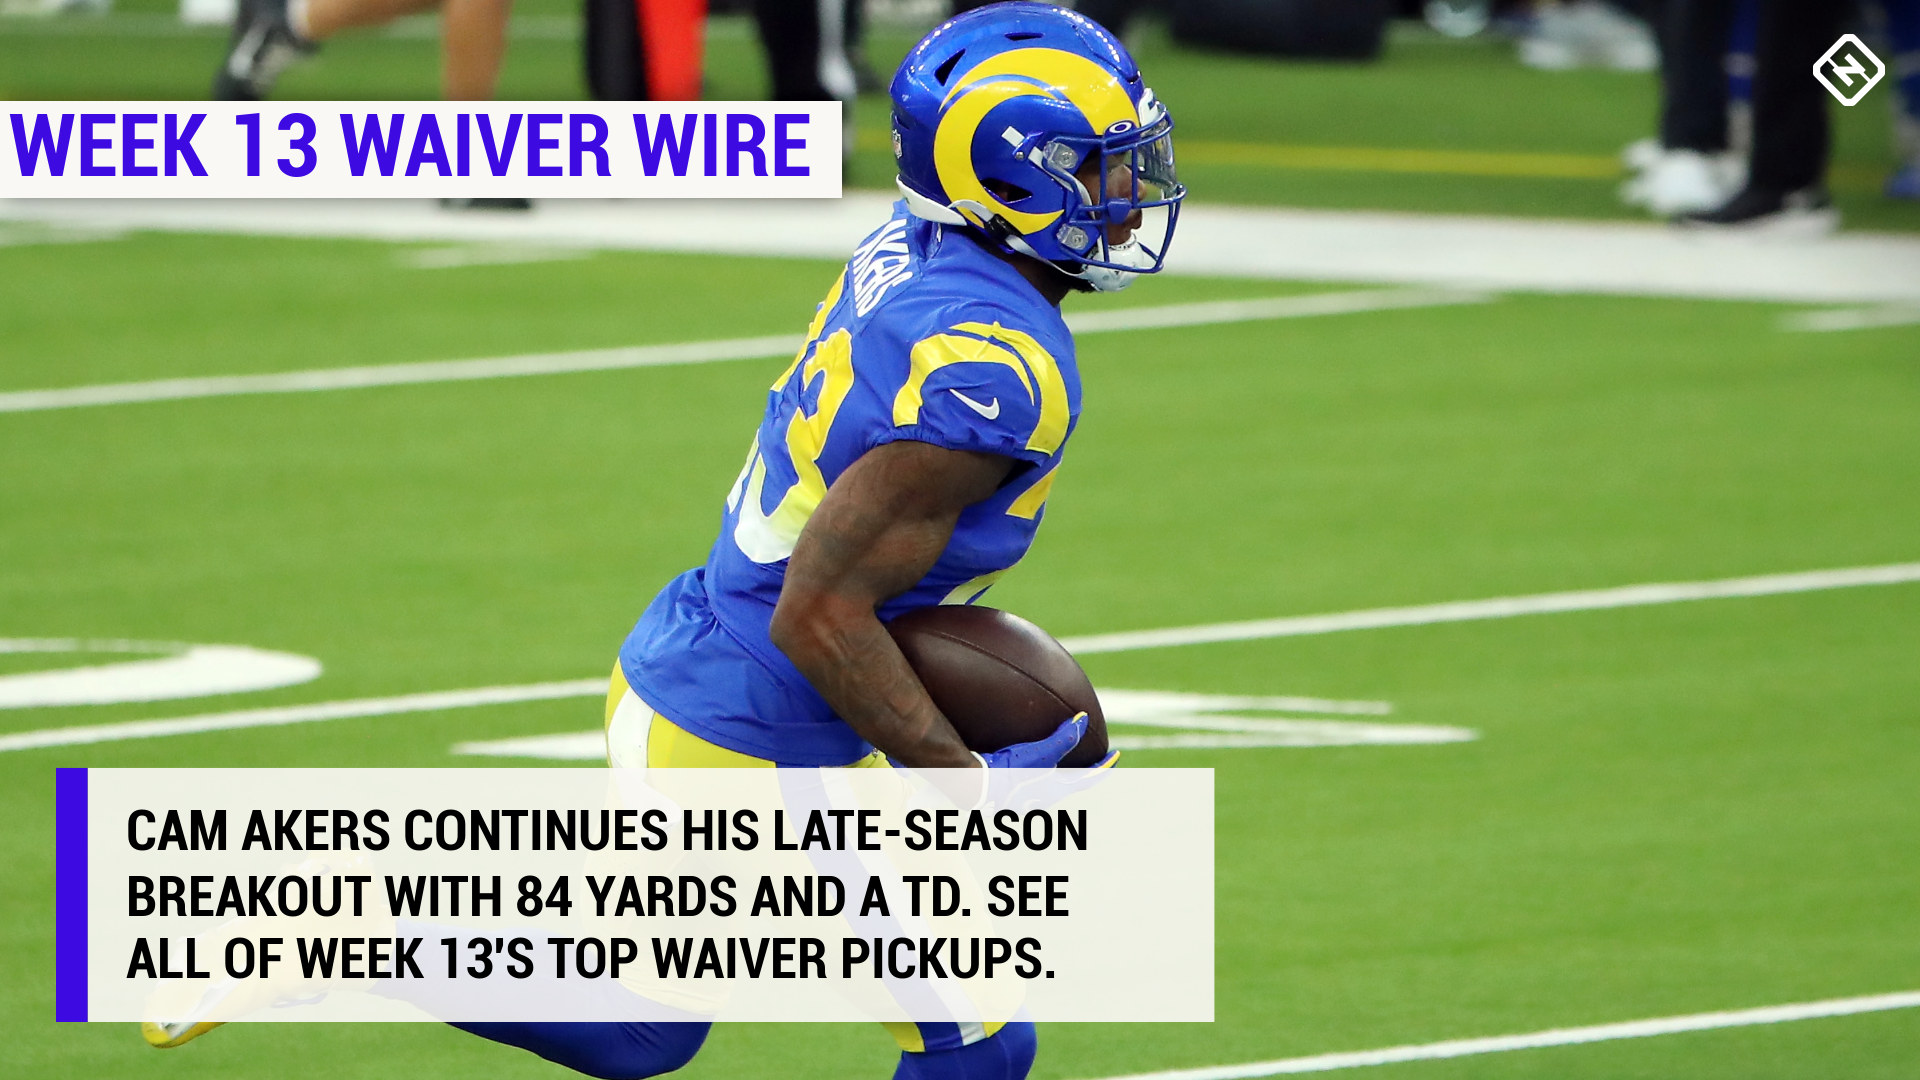 Best fantasy football waiver wire pickups for Week 13